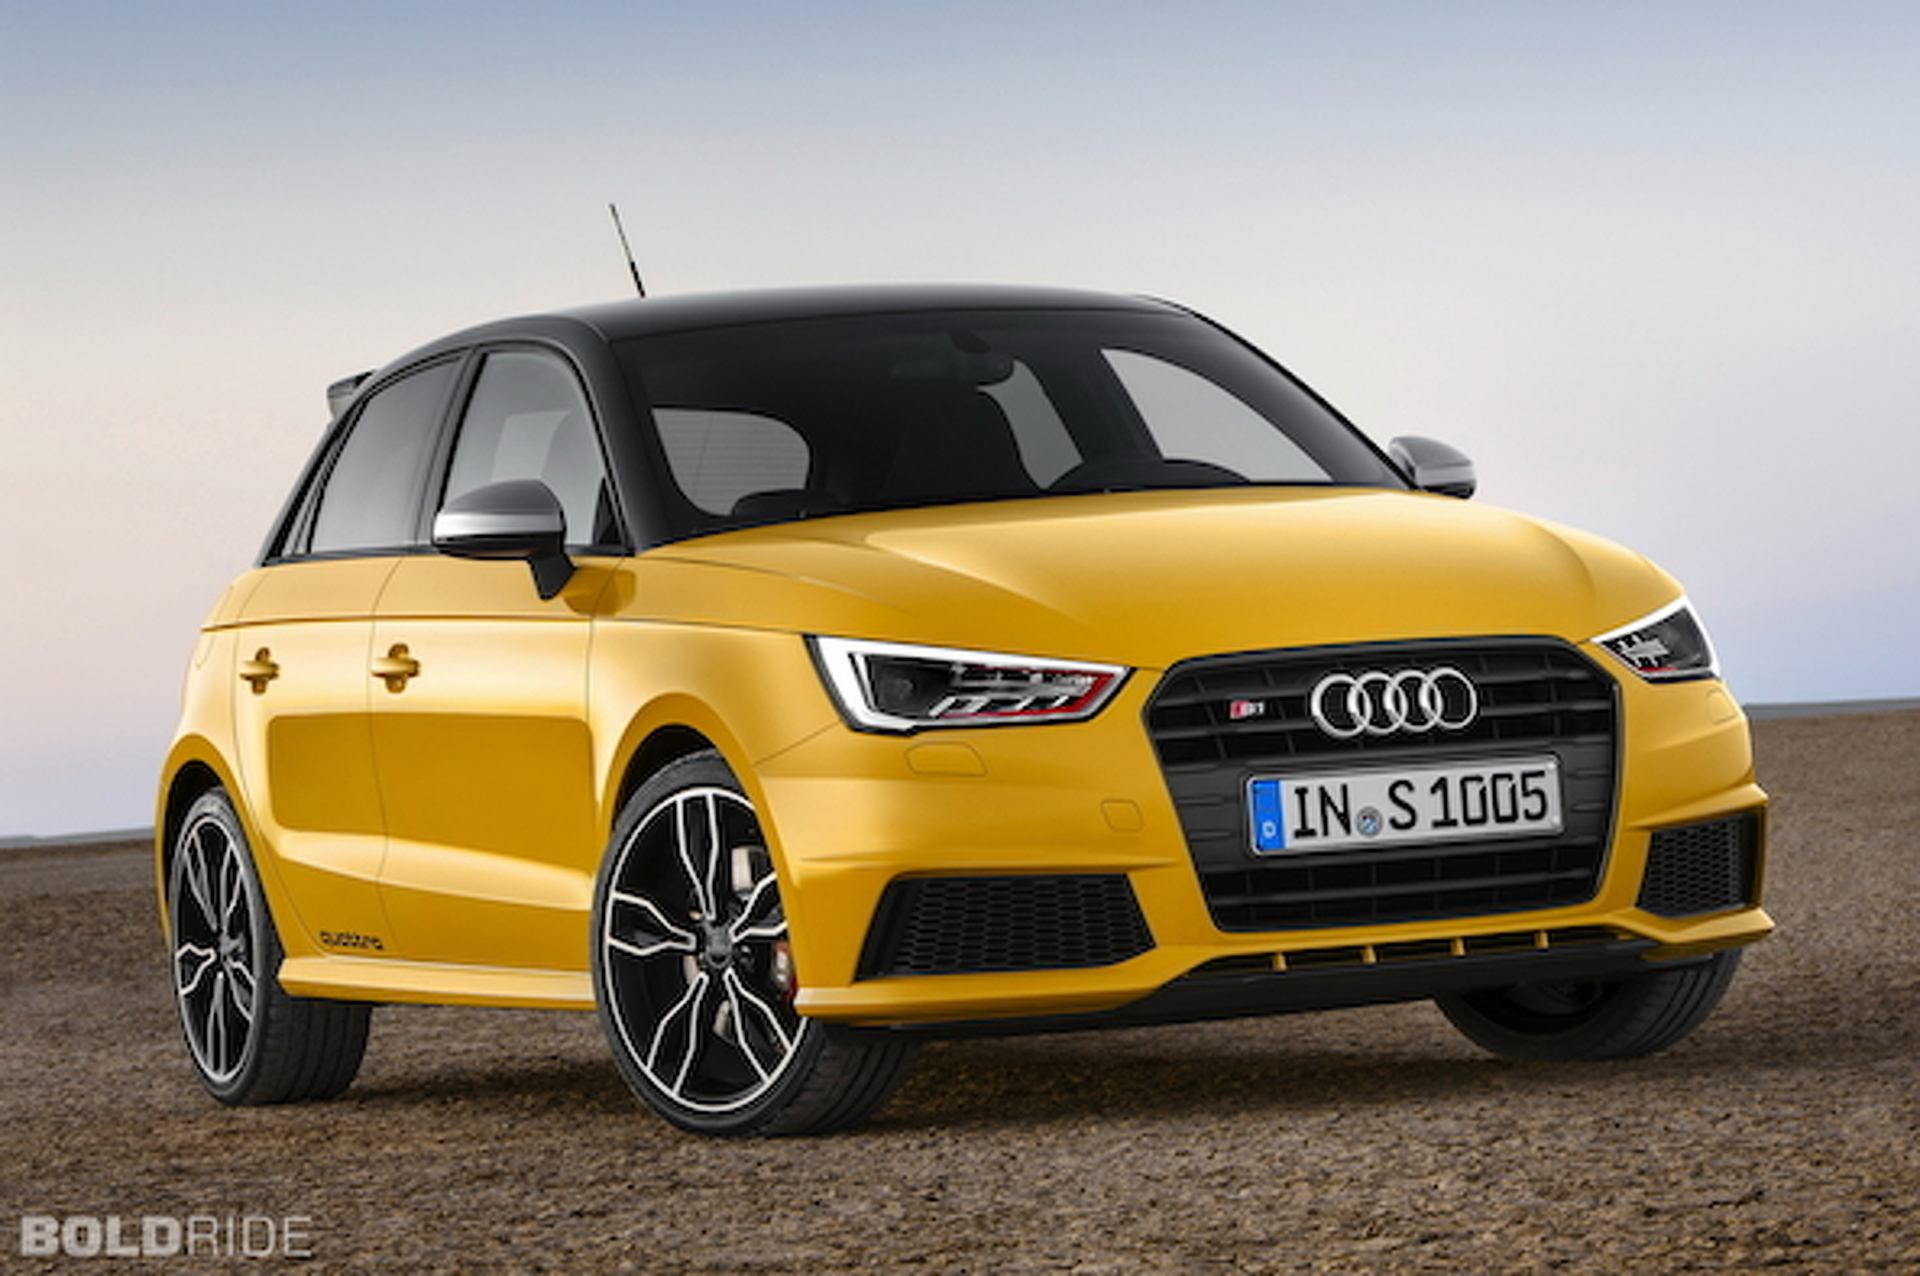 Audi S1 Sportback Delivers 231HP and a Nostalgic Nameplate